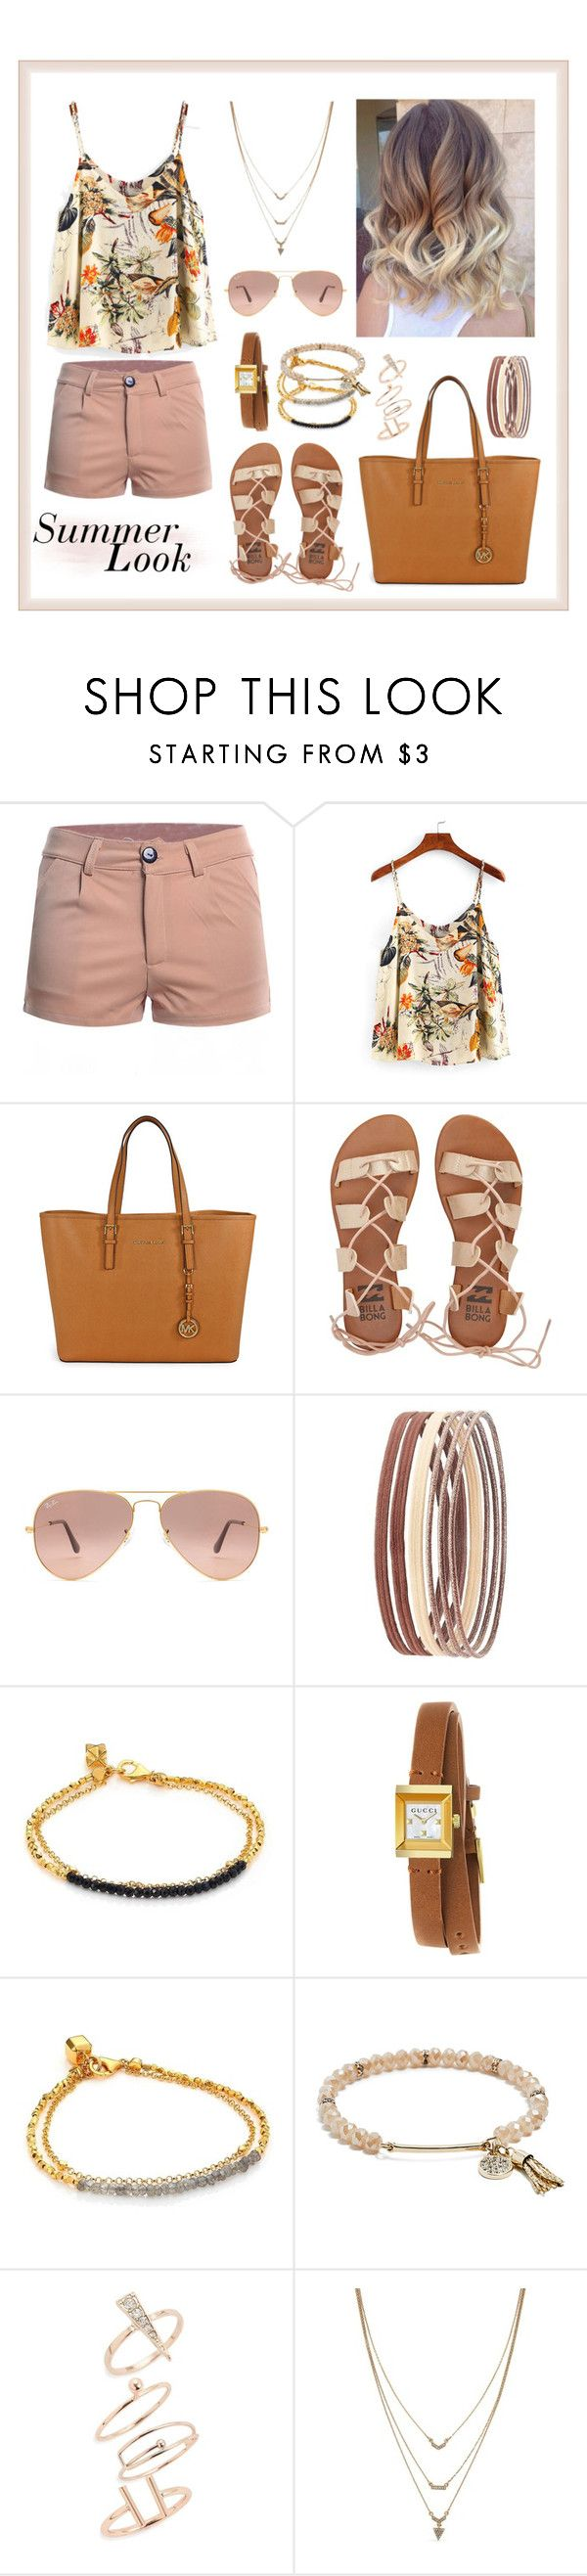 """My Summer Look"" by katymccord77 ❤ liked on Polyvore featuring WithChic, Michael Kors, Billabong, Ray-Ban, Charlotte Russe, Astley Clarke, Gucci, GUESS, Topshop and Jessica Simpson"